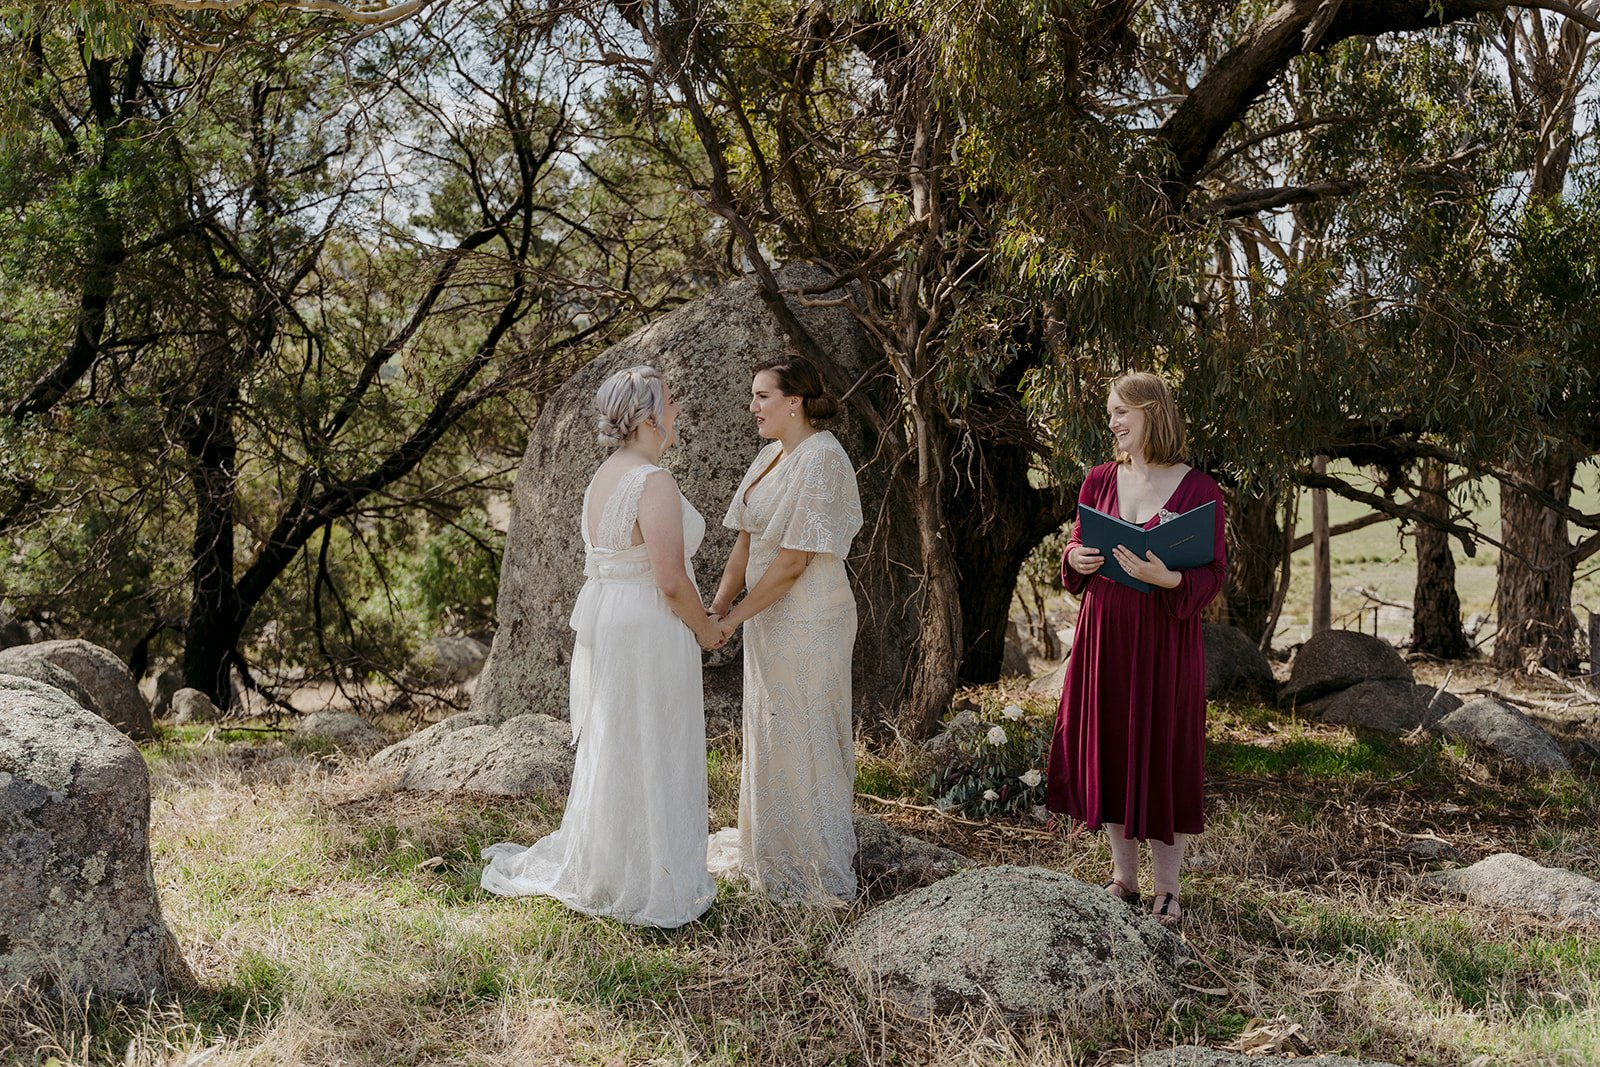 Katie Reeve - The bushwalking celebrant